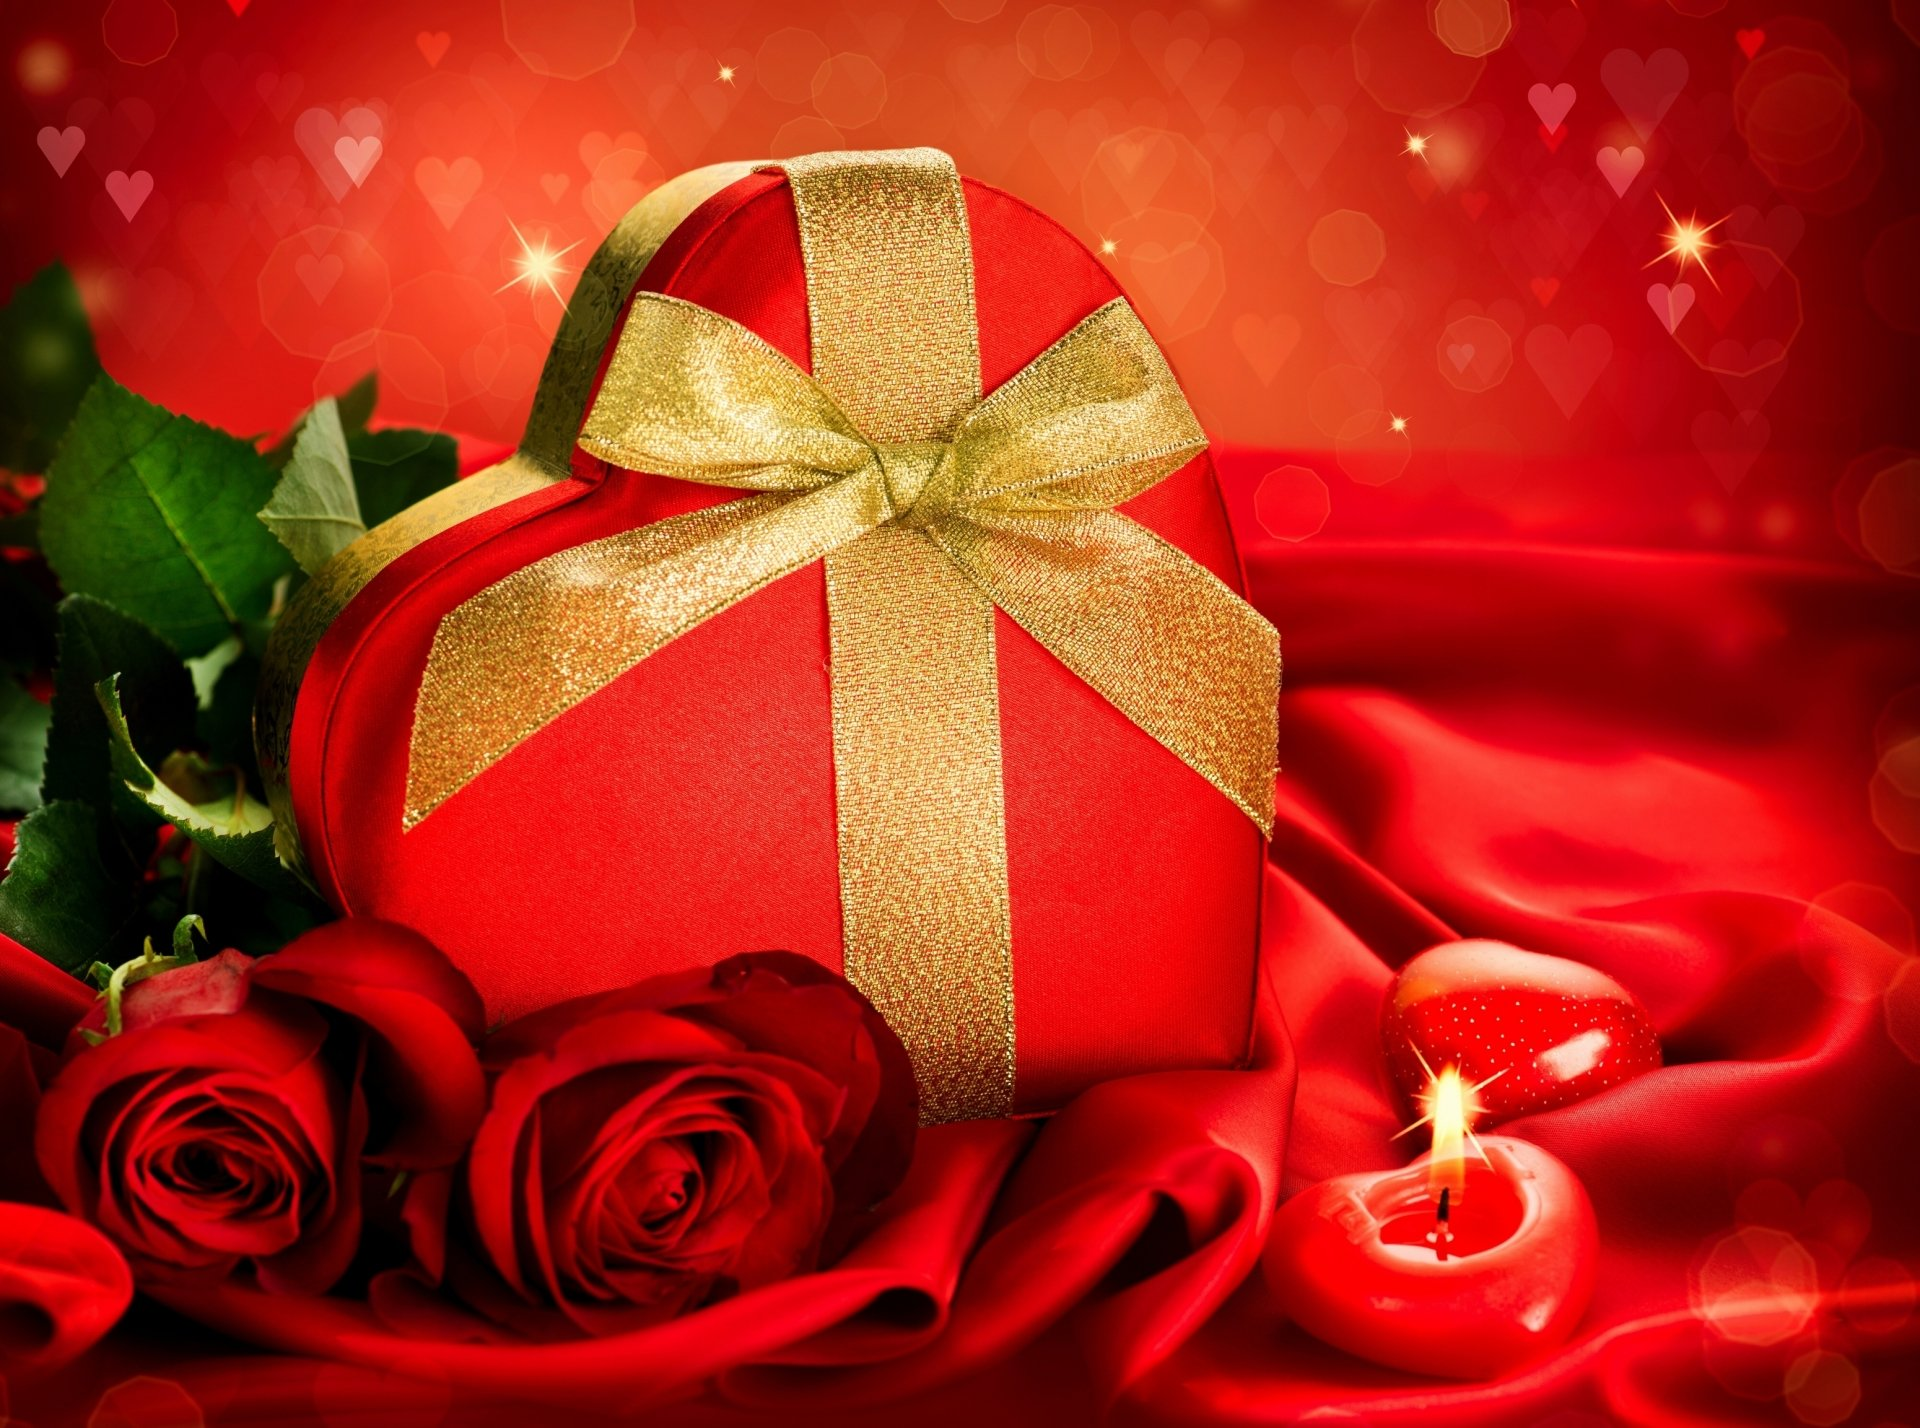 Holiday - Valentine's Day  Holiday Heart Red Box Gold Ribbon Candle Rose Wallpaper